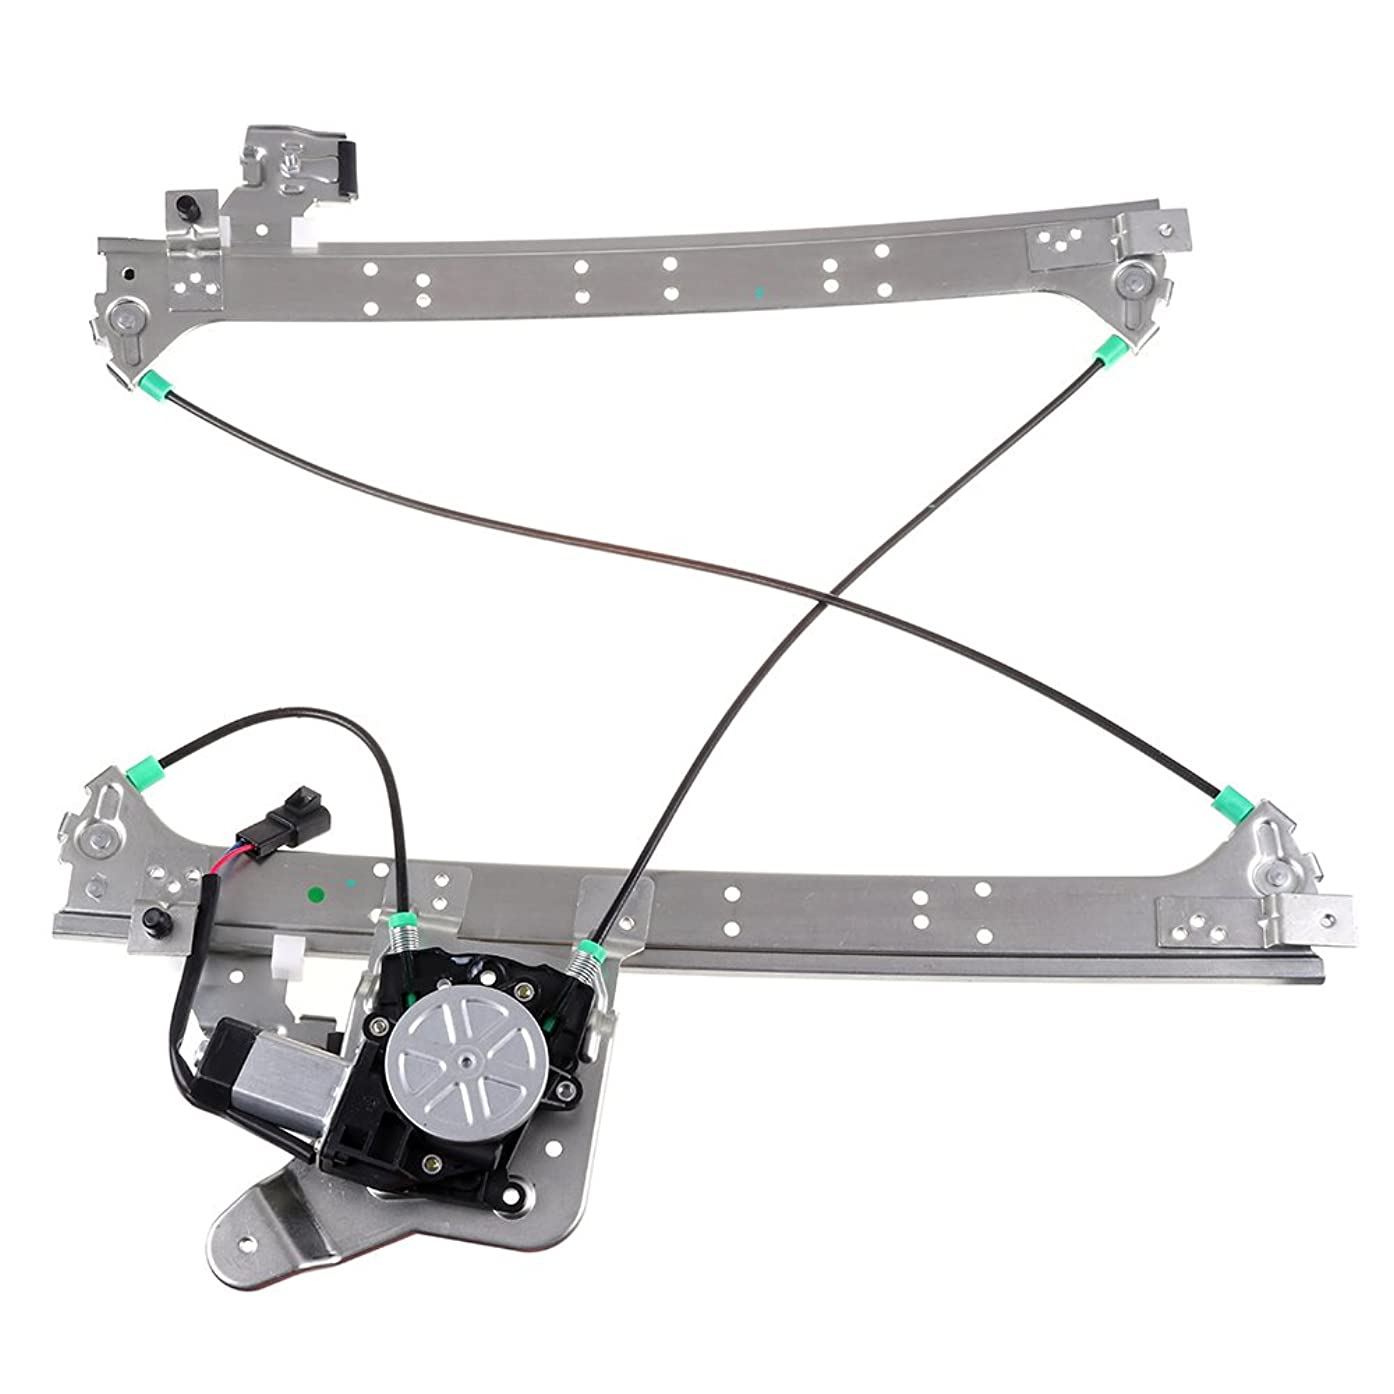 SCITOO Compatible fit for Power Window Lift Regulator High Performance Automotive Replacement Parts Chevrolet GMC Rear Left Drivers Side Motor 15077722 15135970